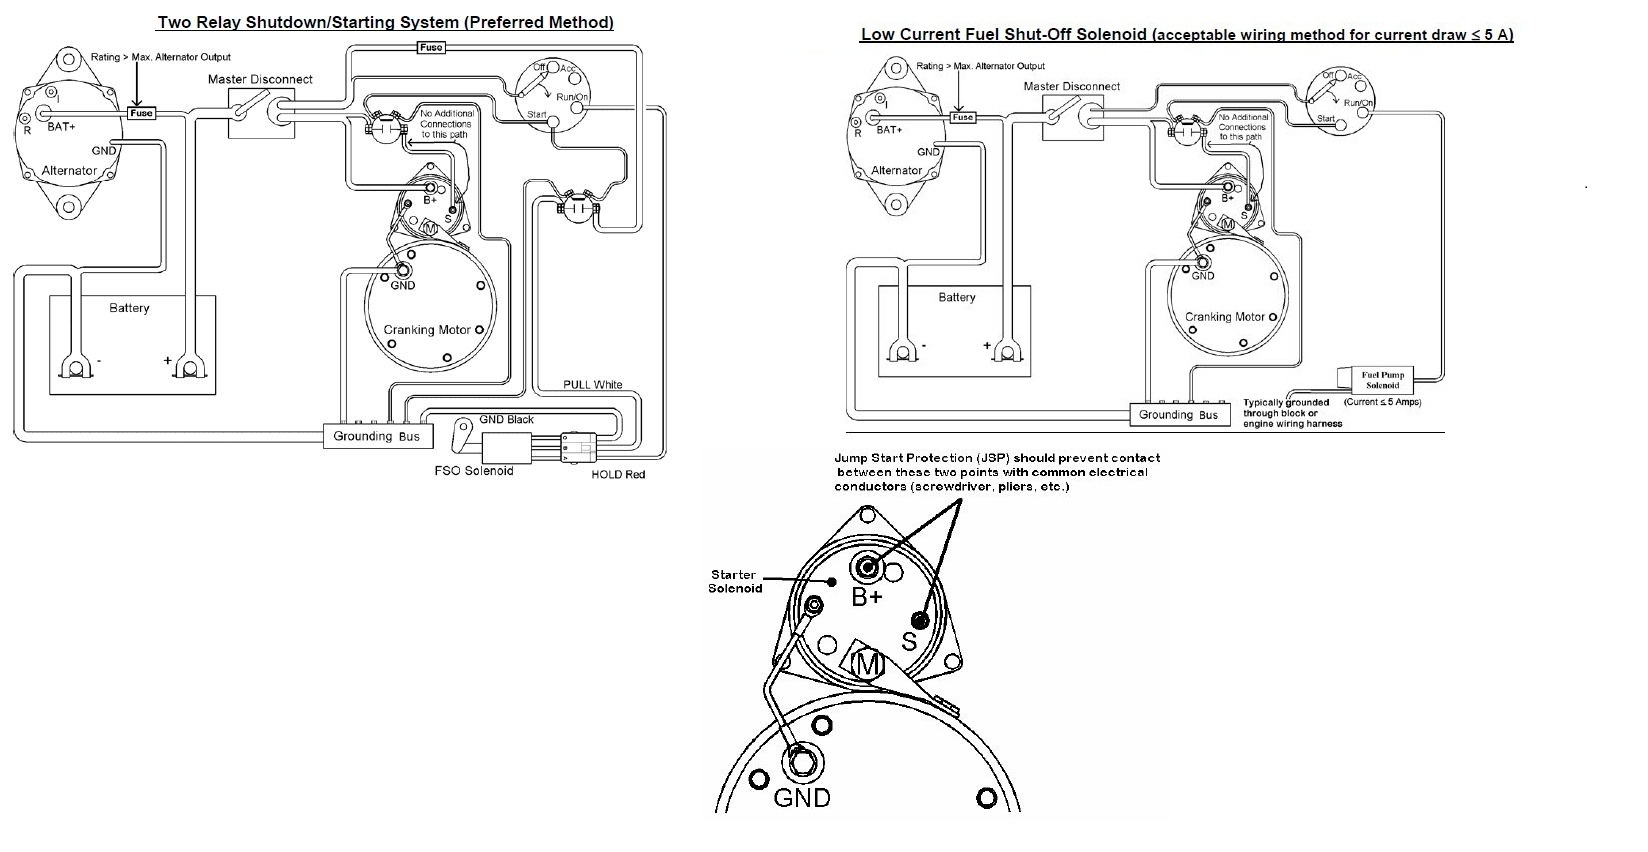 Basic Fuel Shutoff Solenoid Starter Wiring Information on fuel injector wiring